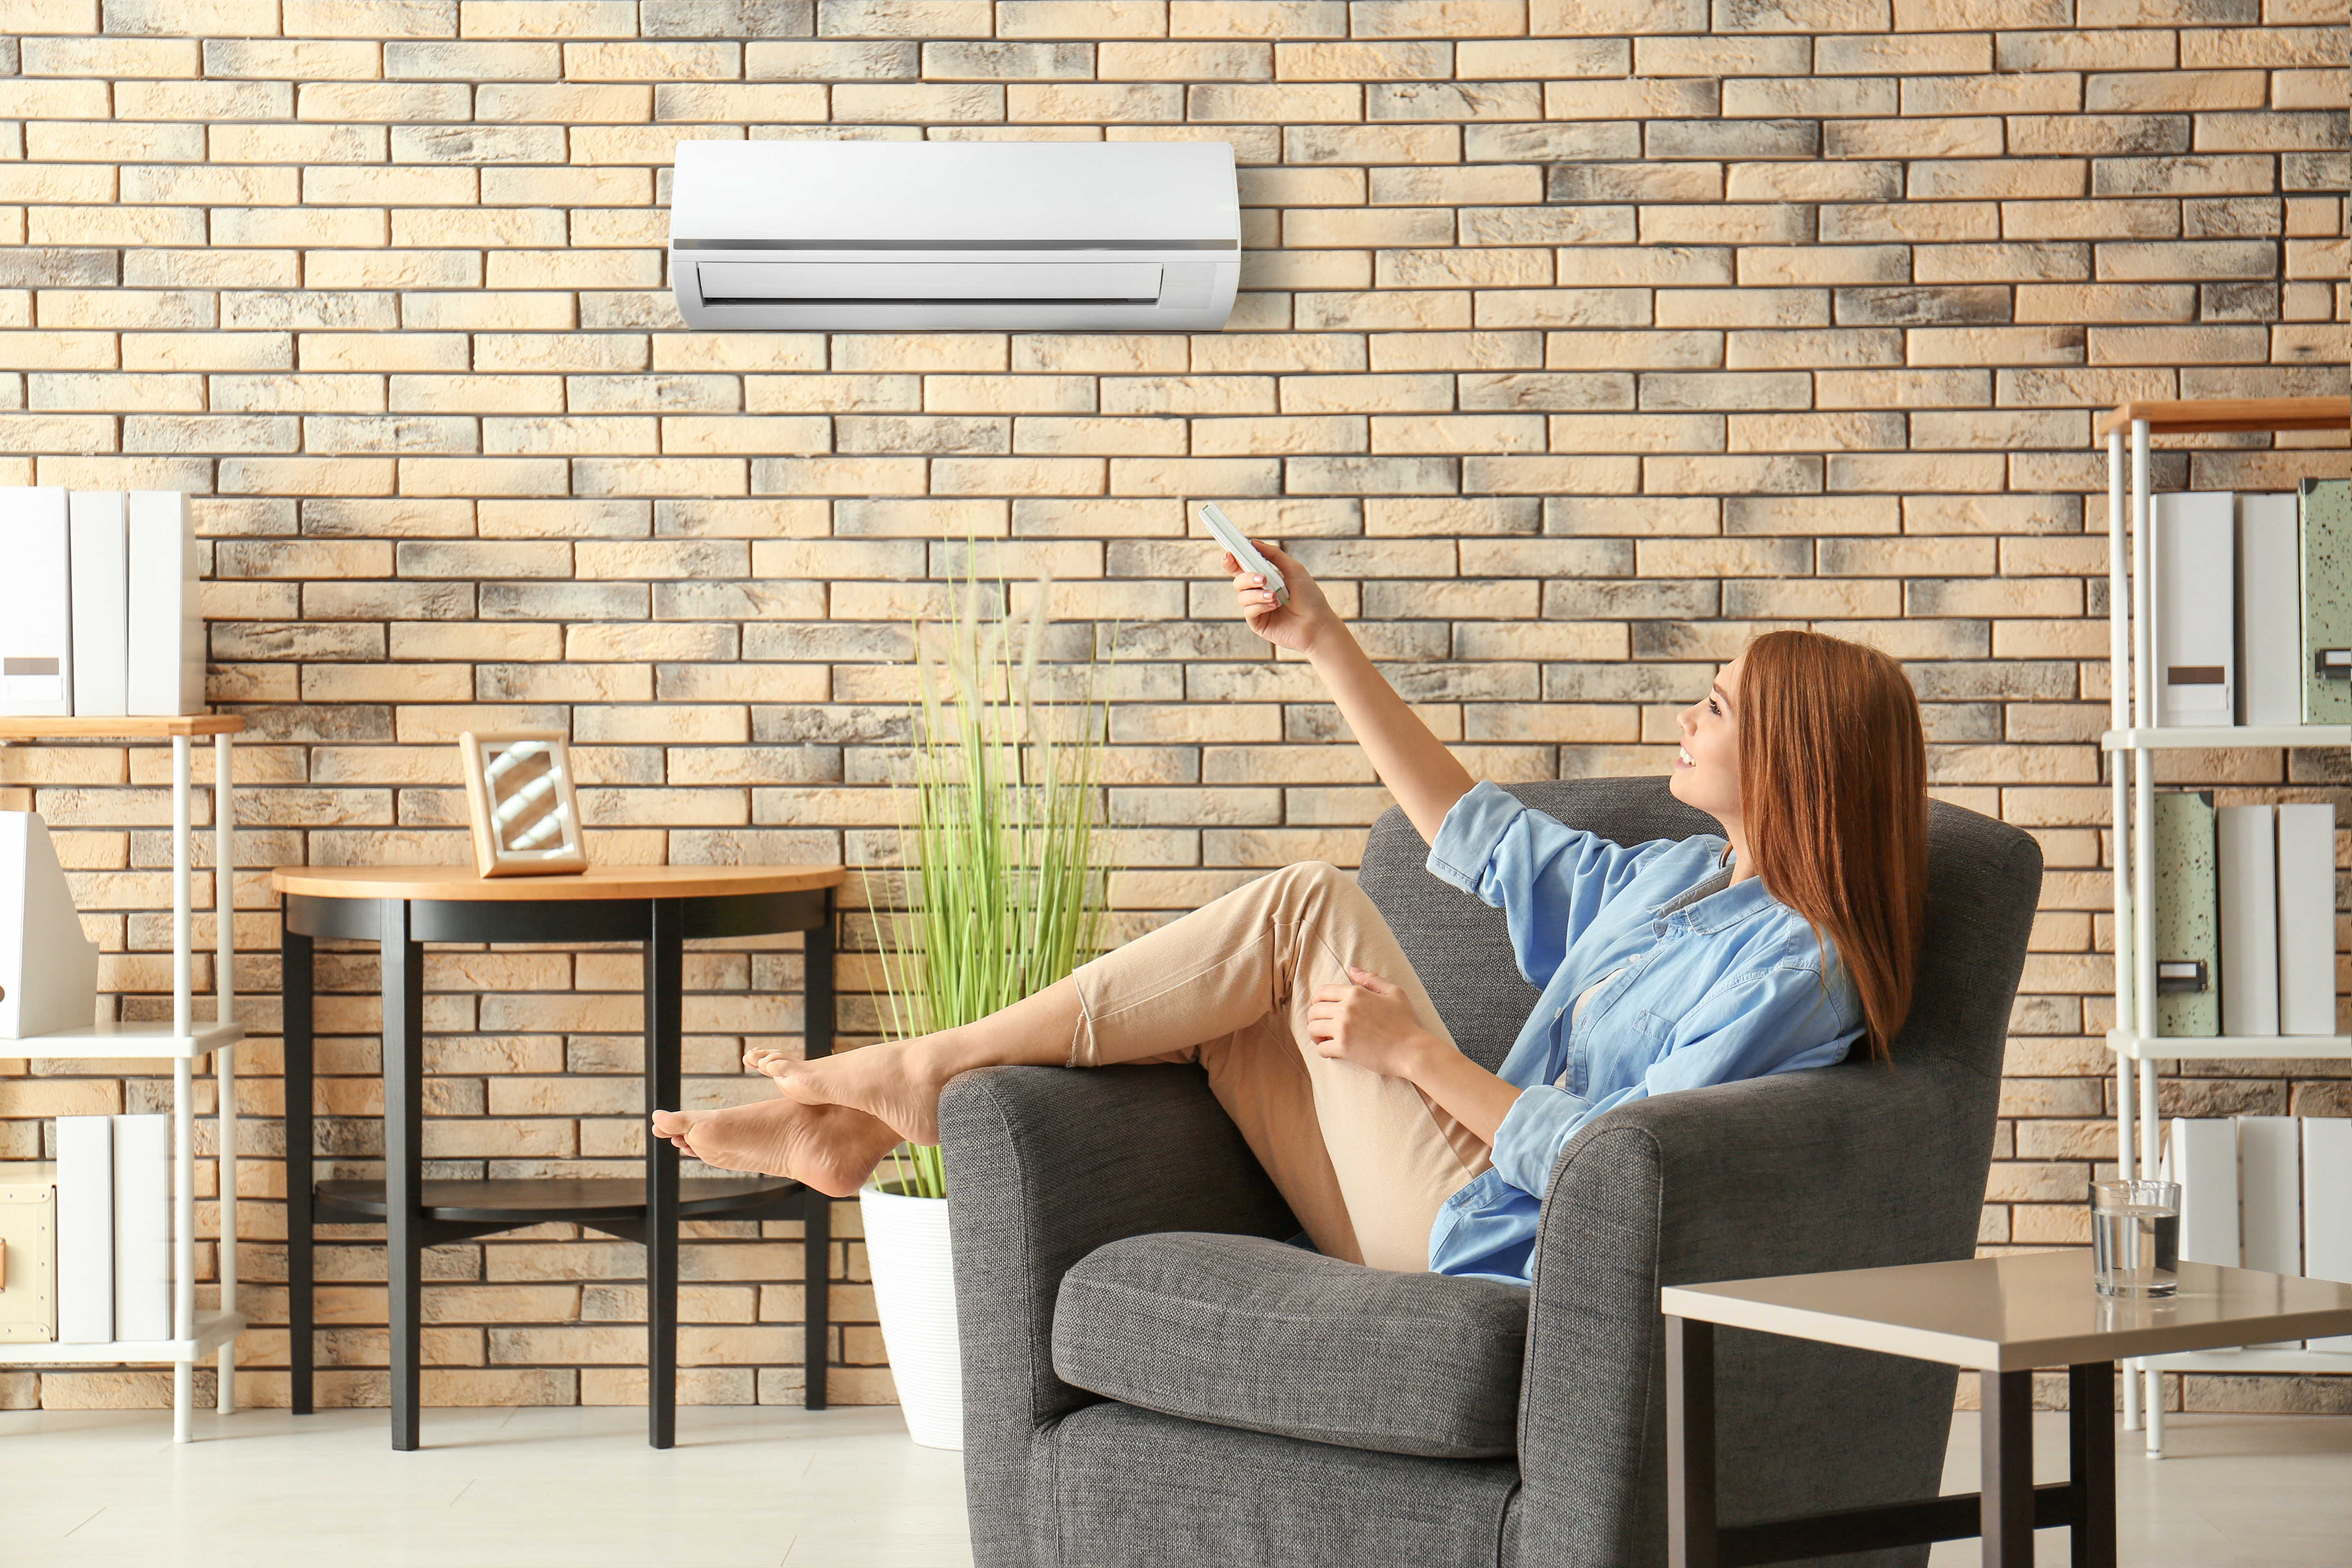 hydronic cooling_hydronic heating_heat pumps_radiant floor heating